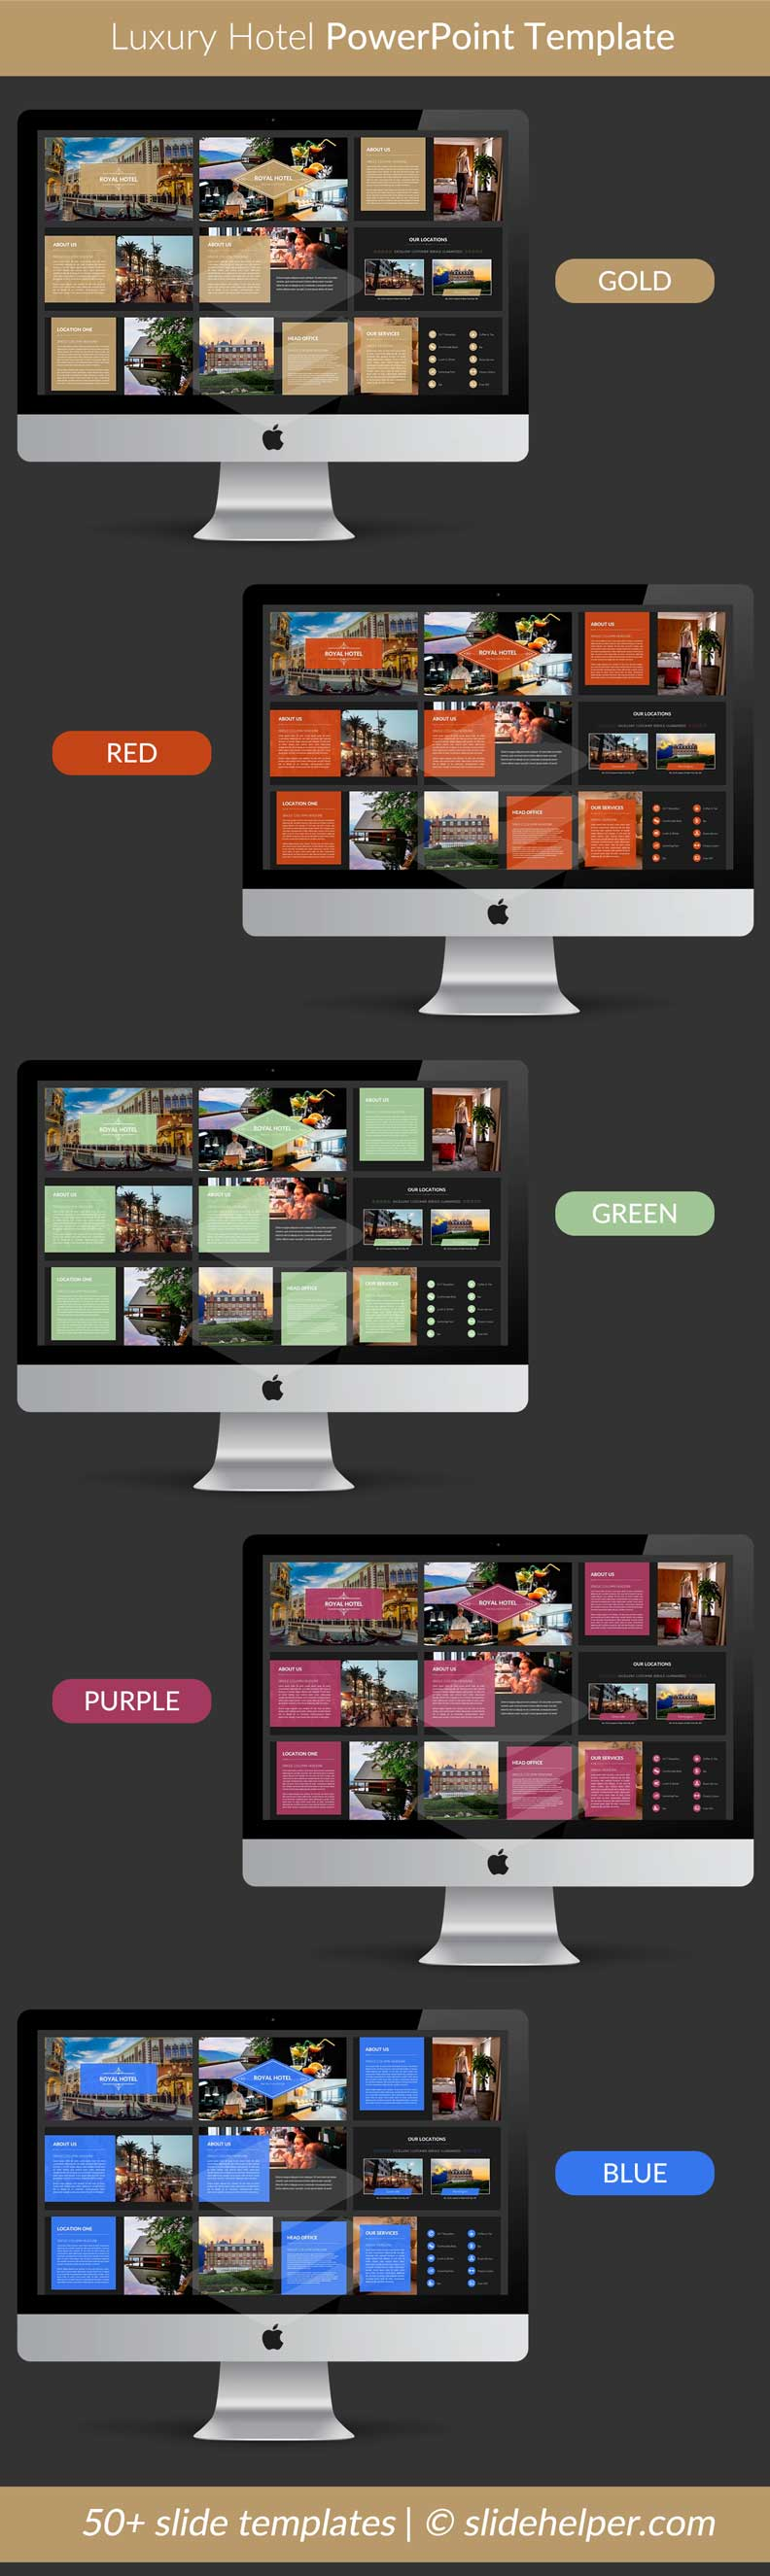 hotel-ppt-presentation-template